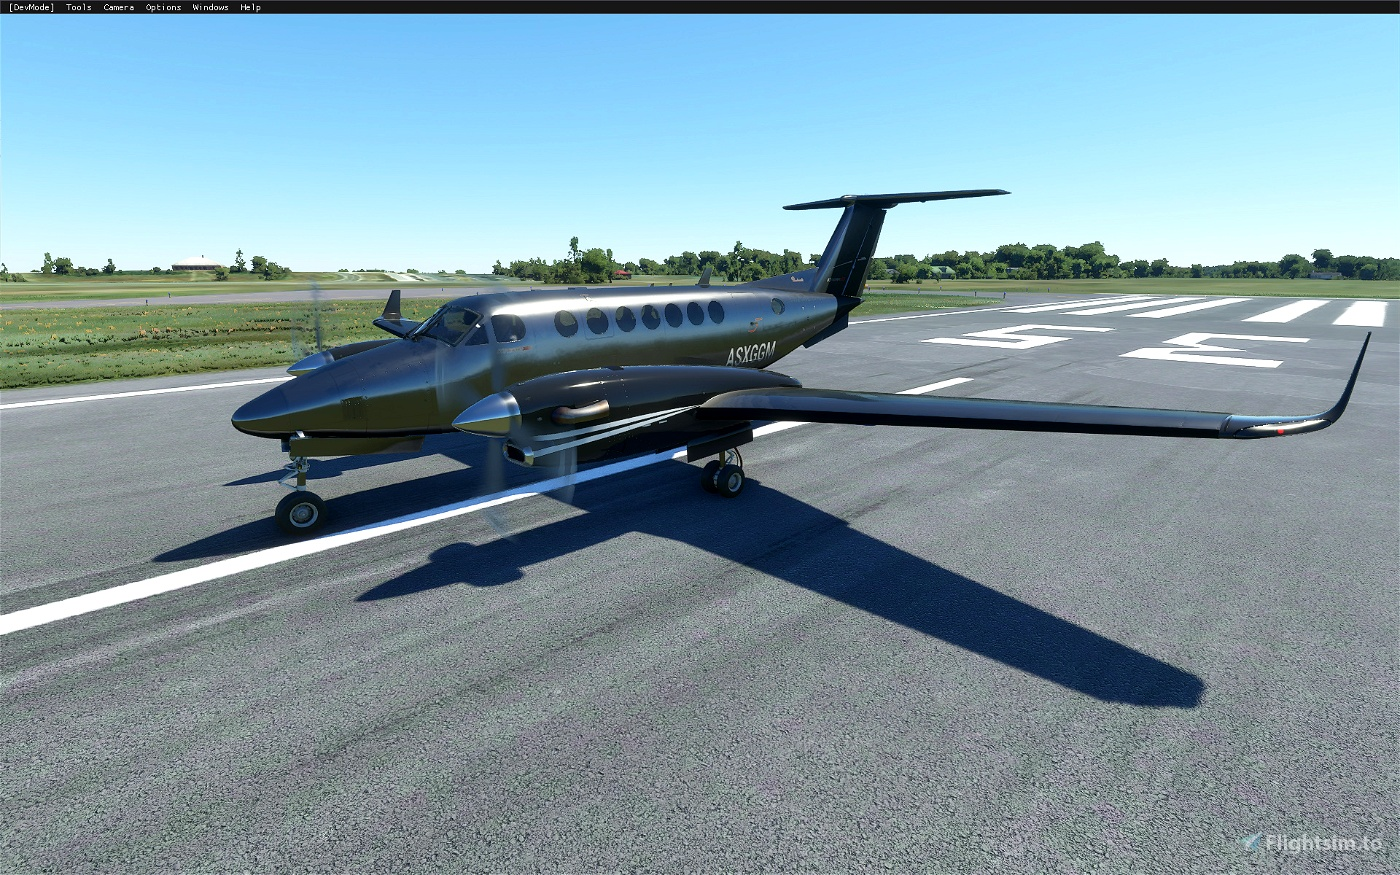 King Air 350i Metals and Alternate Color Liveries (8 total)